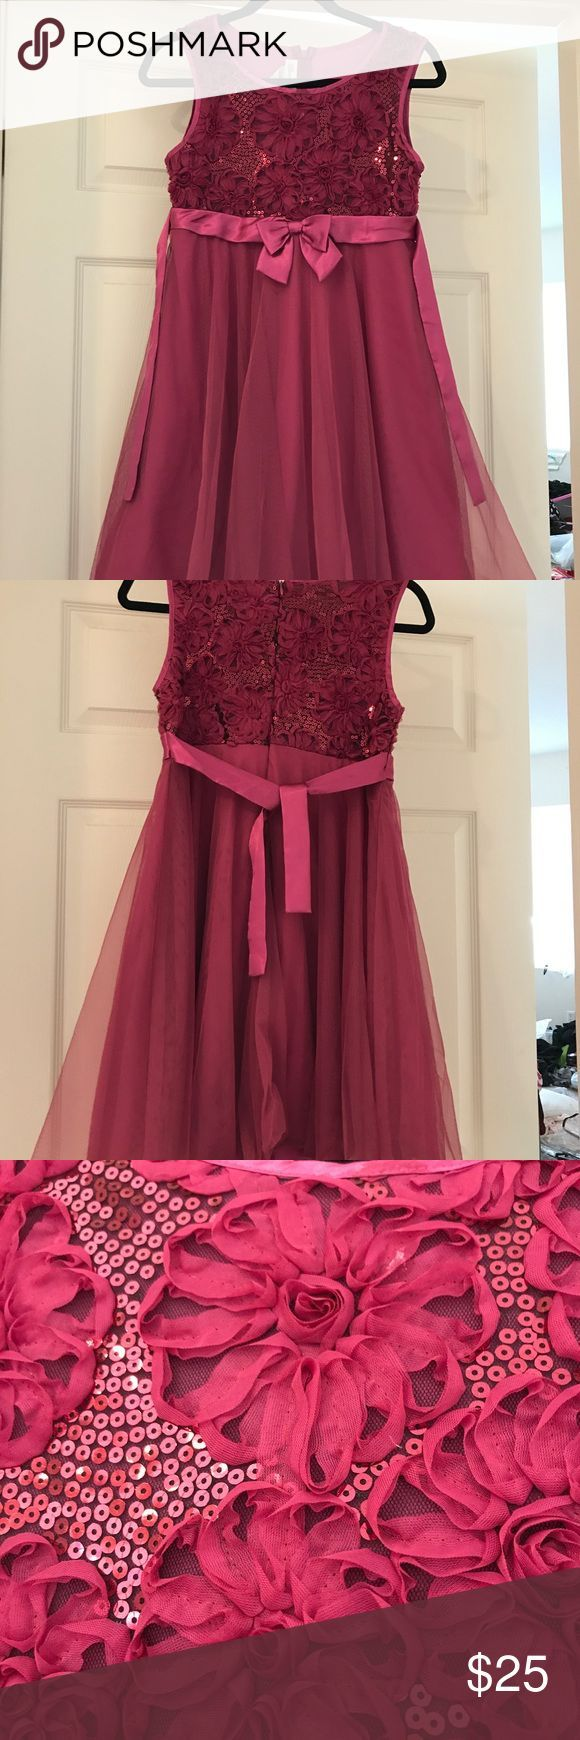 Girls fancy dress.  Size 16. Used once. Girls fancy dress. Size 16. Used once. Fuchsia color. Bonnie Jean brand. Beautiful details, especially on the top portion. Great dress for the holidays! Bonnie Jean Dresses Formal